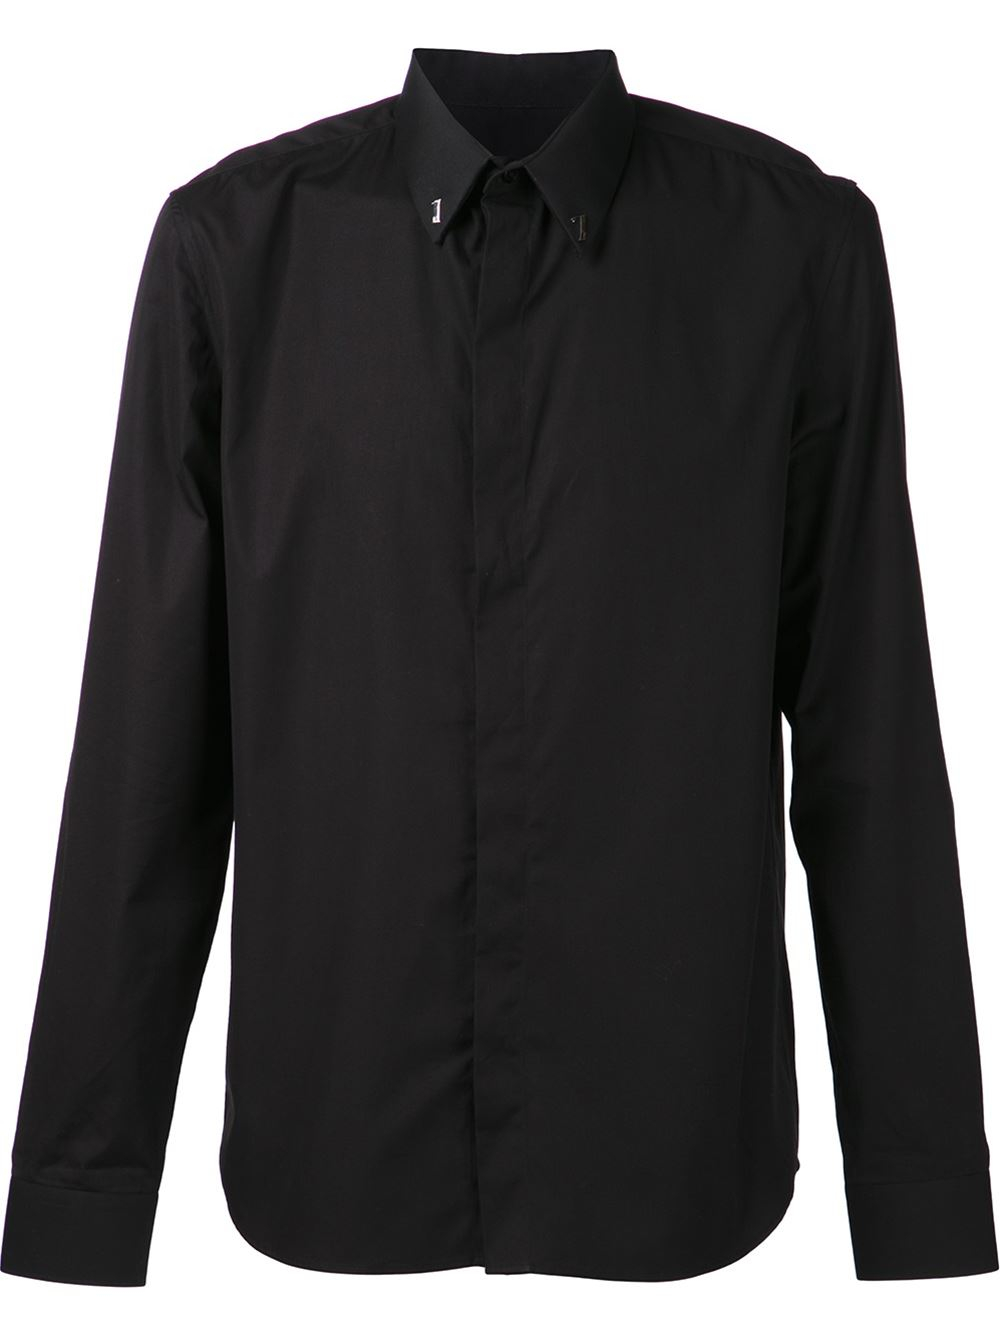 givenchy 39 17 39 classic shirt in black for men lyst. Black Bedroom Furniture Sets. Home Design Ideas